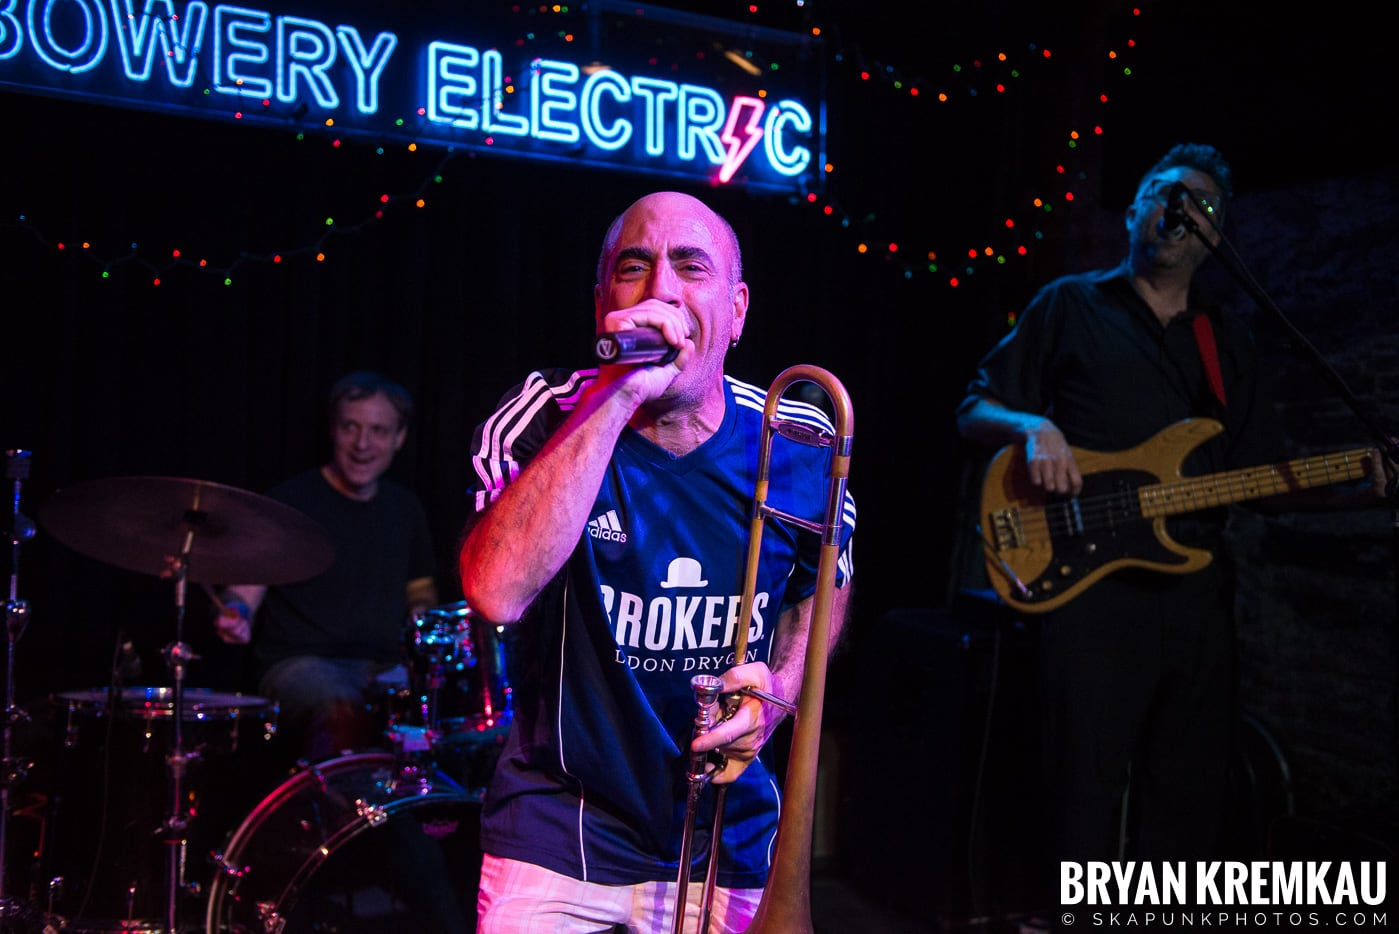 Cenzo @ Bowery Electric, NYC - 11.17.18 (27)